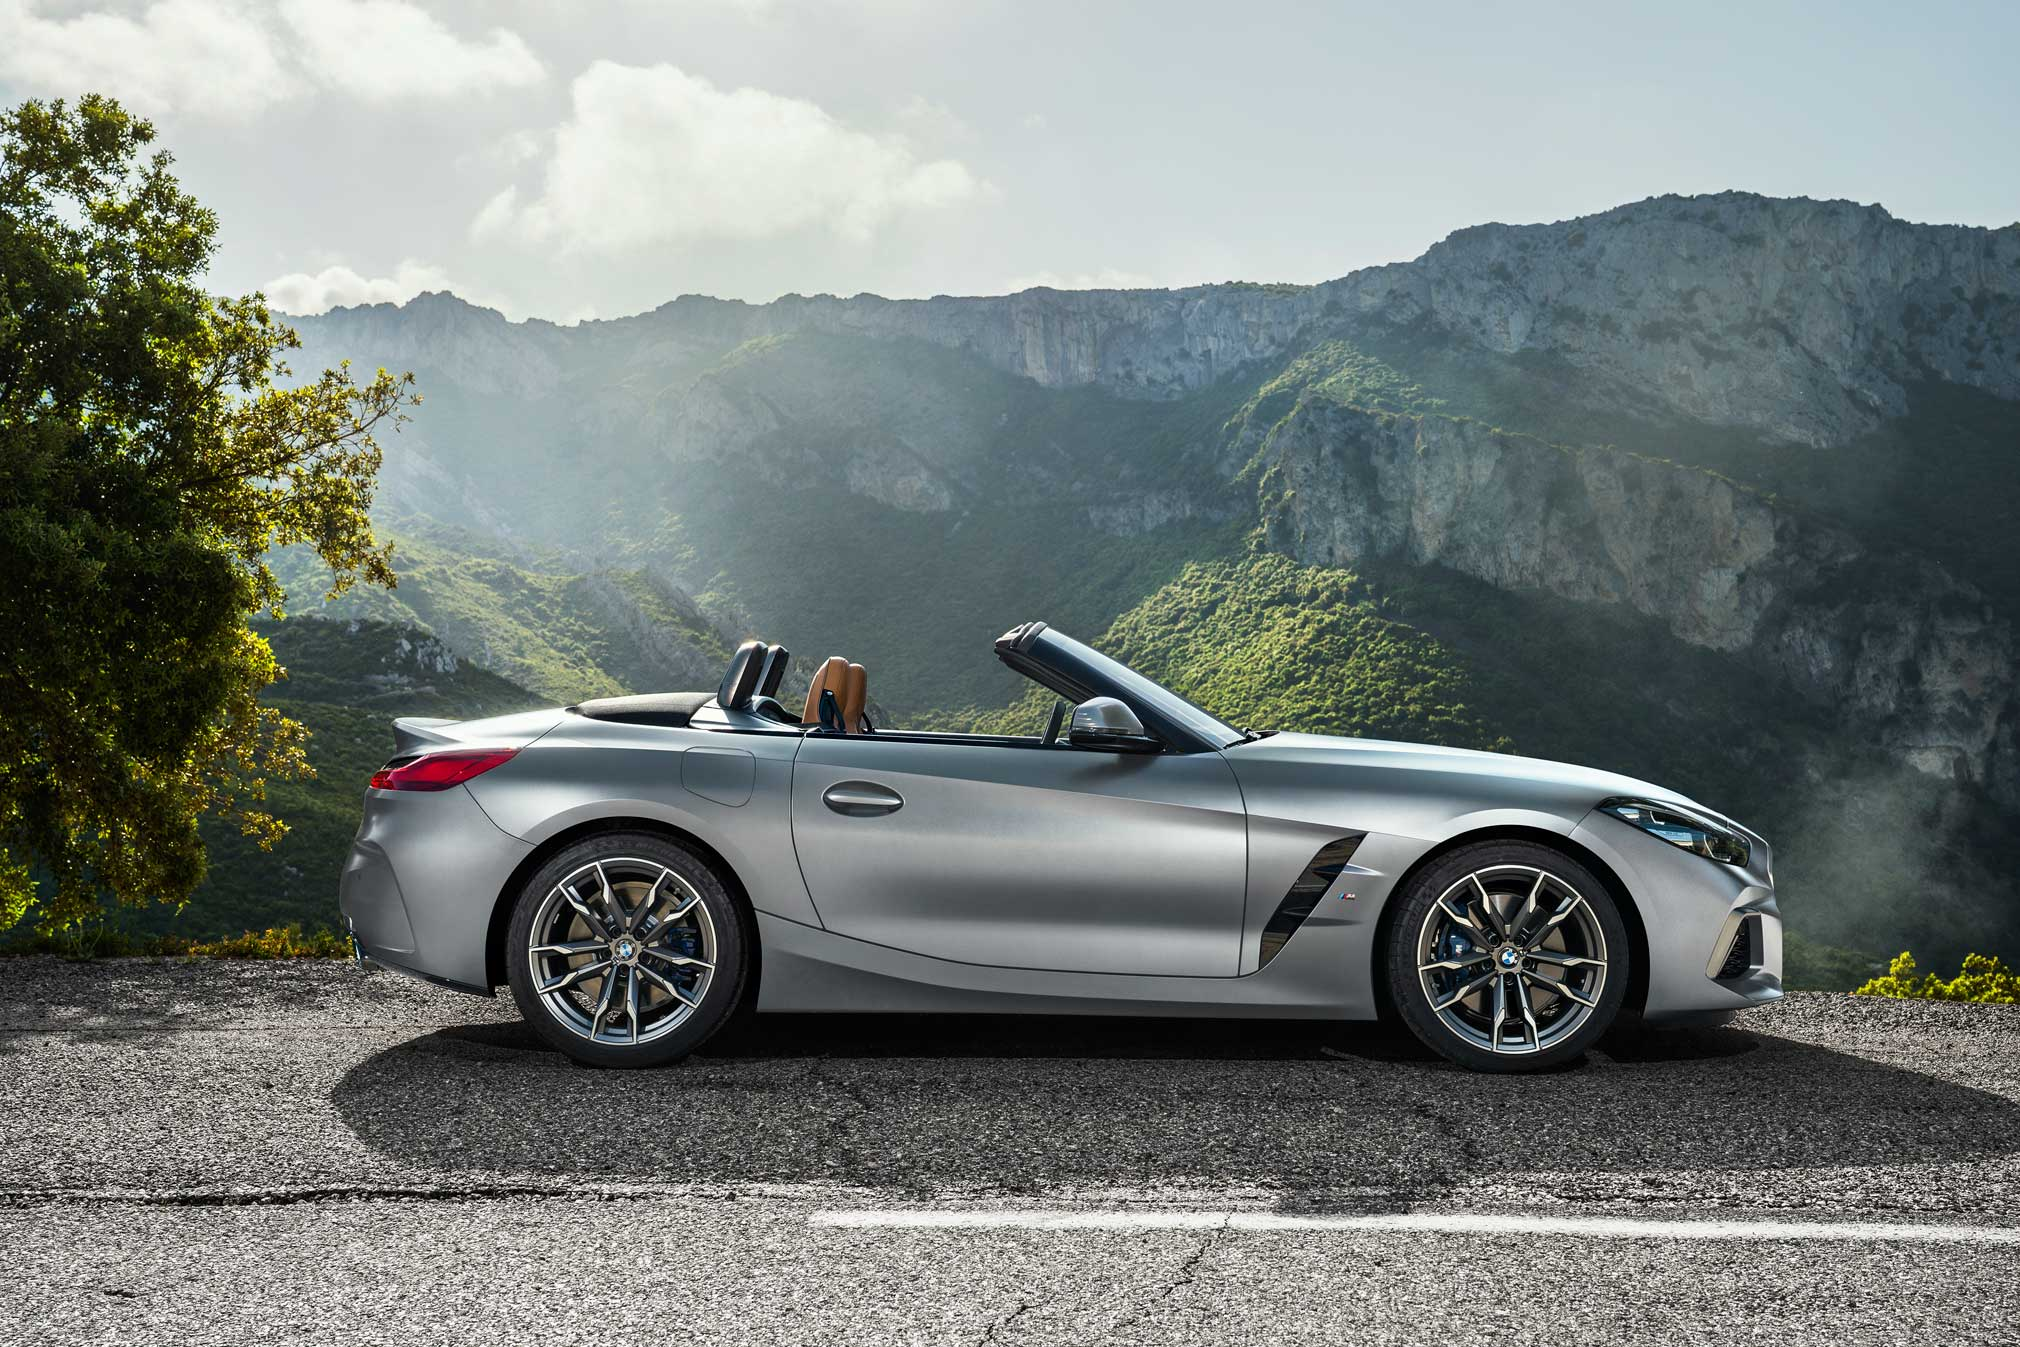 2020 BMW Z4 Roadster Images